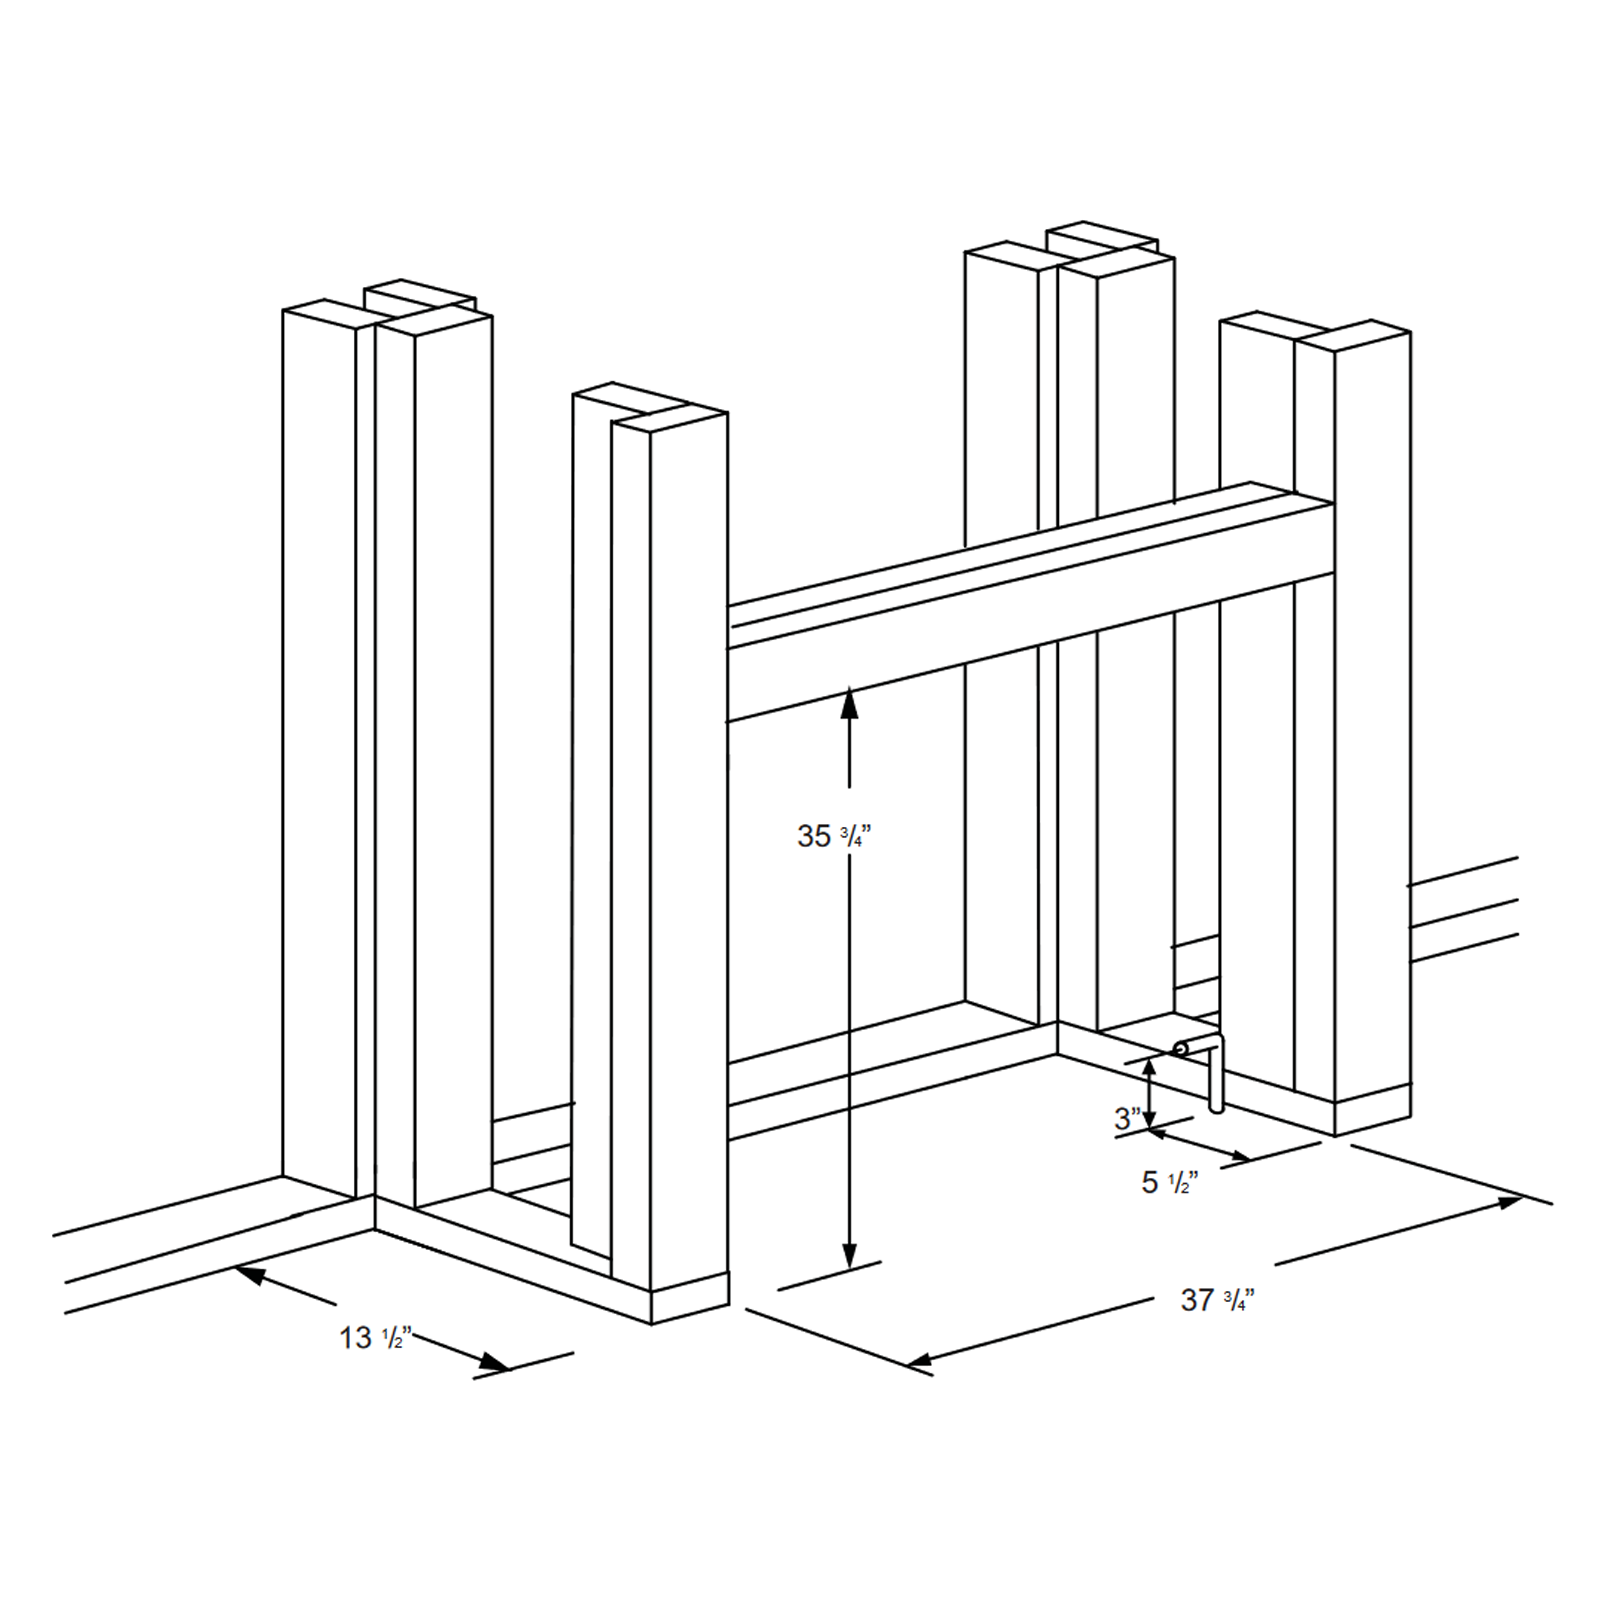 GVF36 Technical Drawing 2